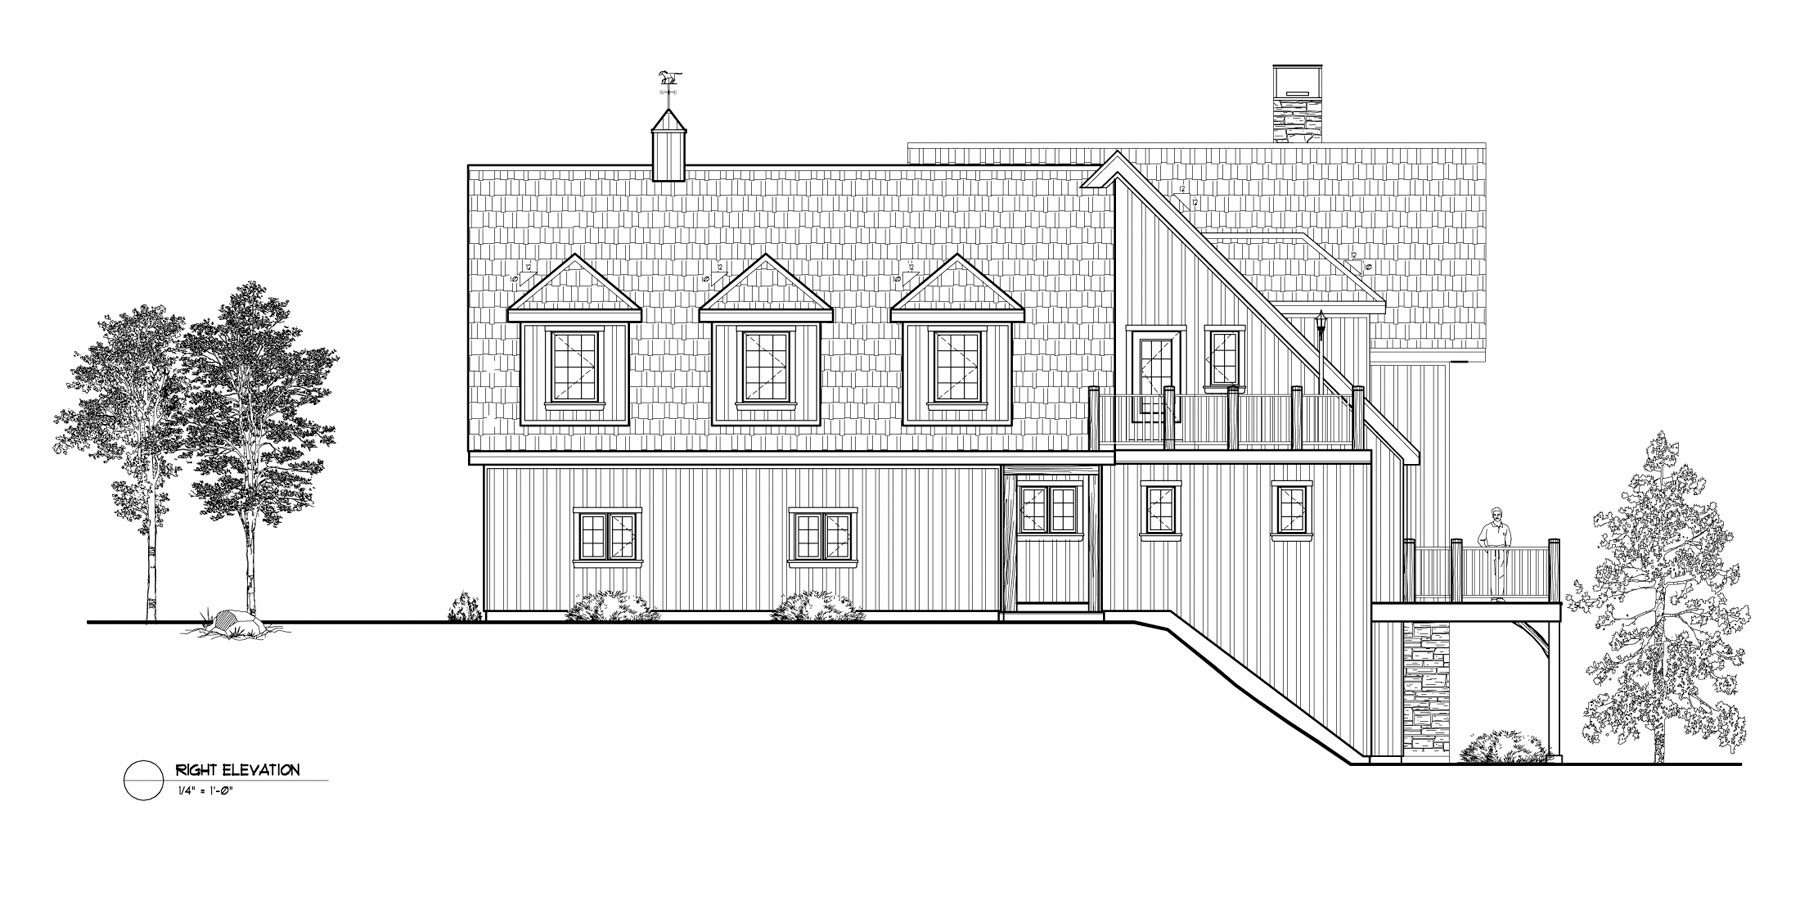 Normerica Timber Frames, House Plan, The Brennan 3576, Right Elevation